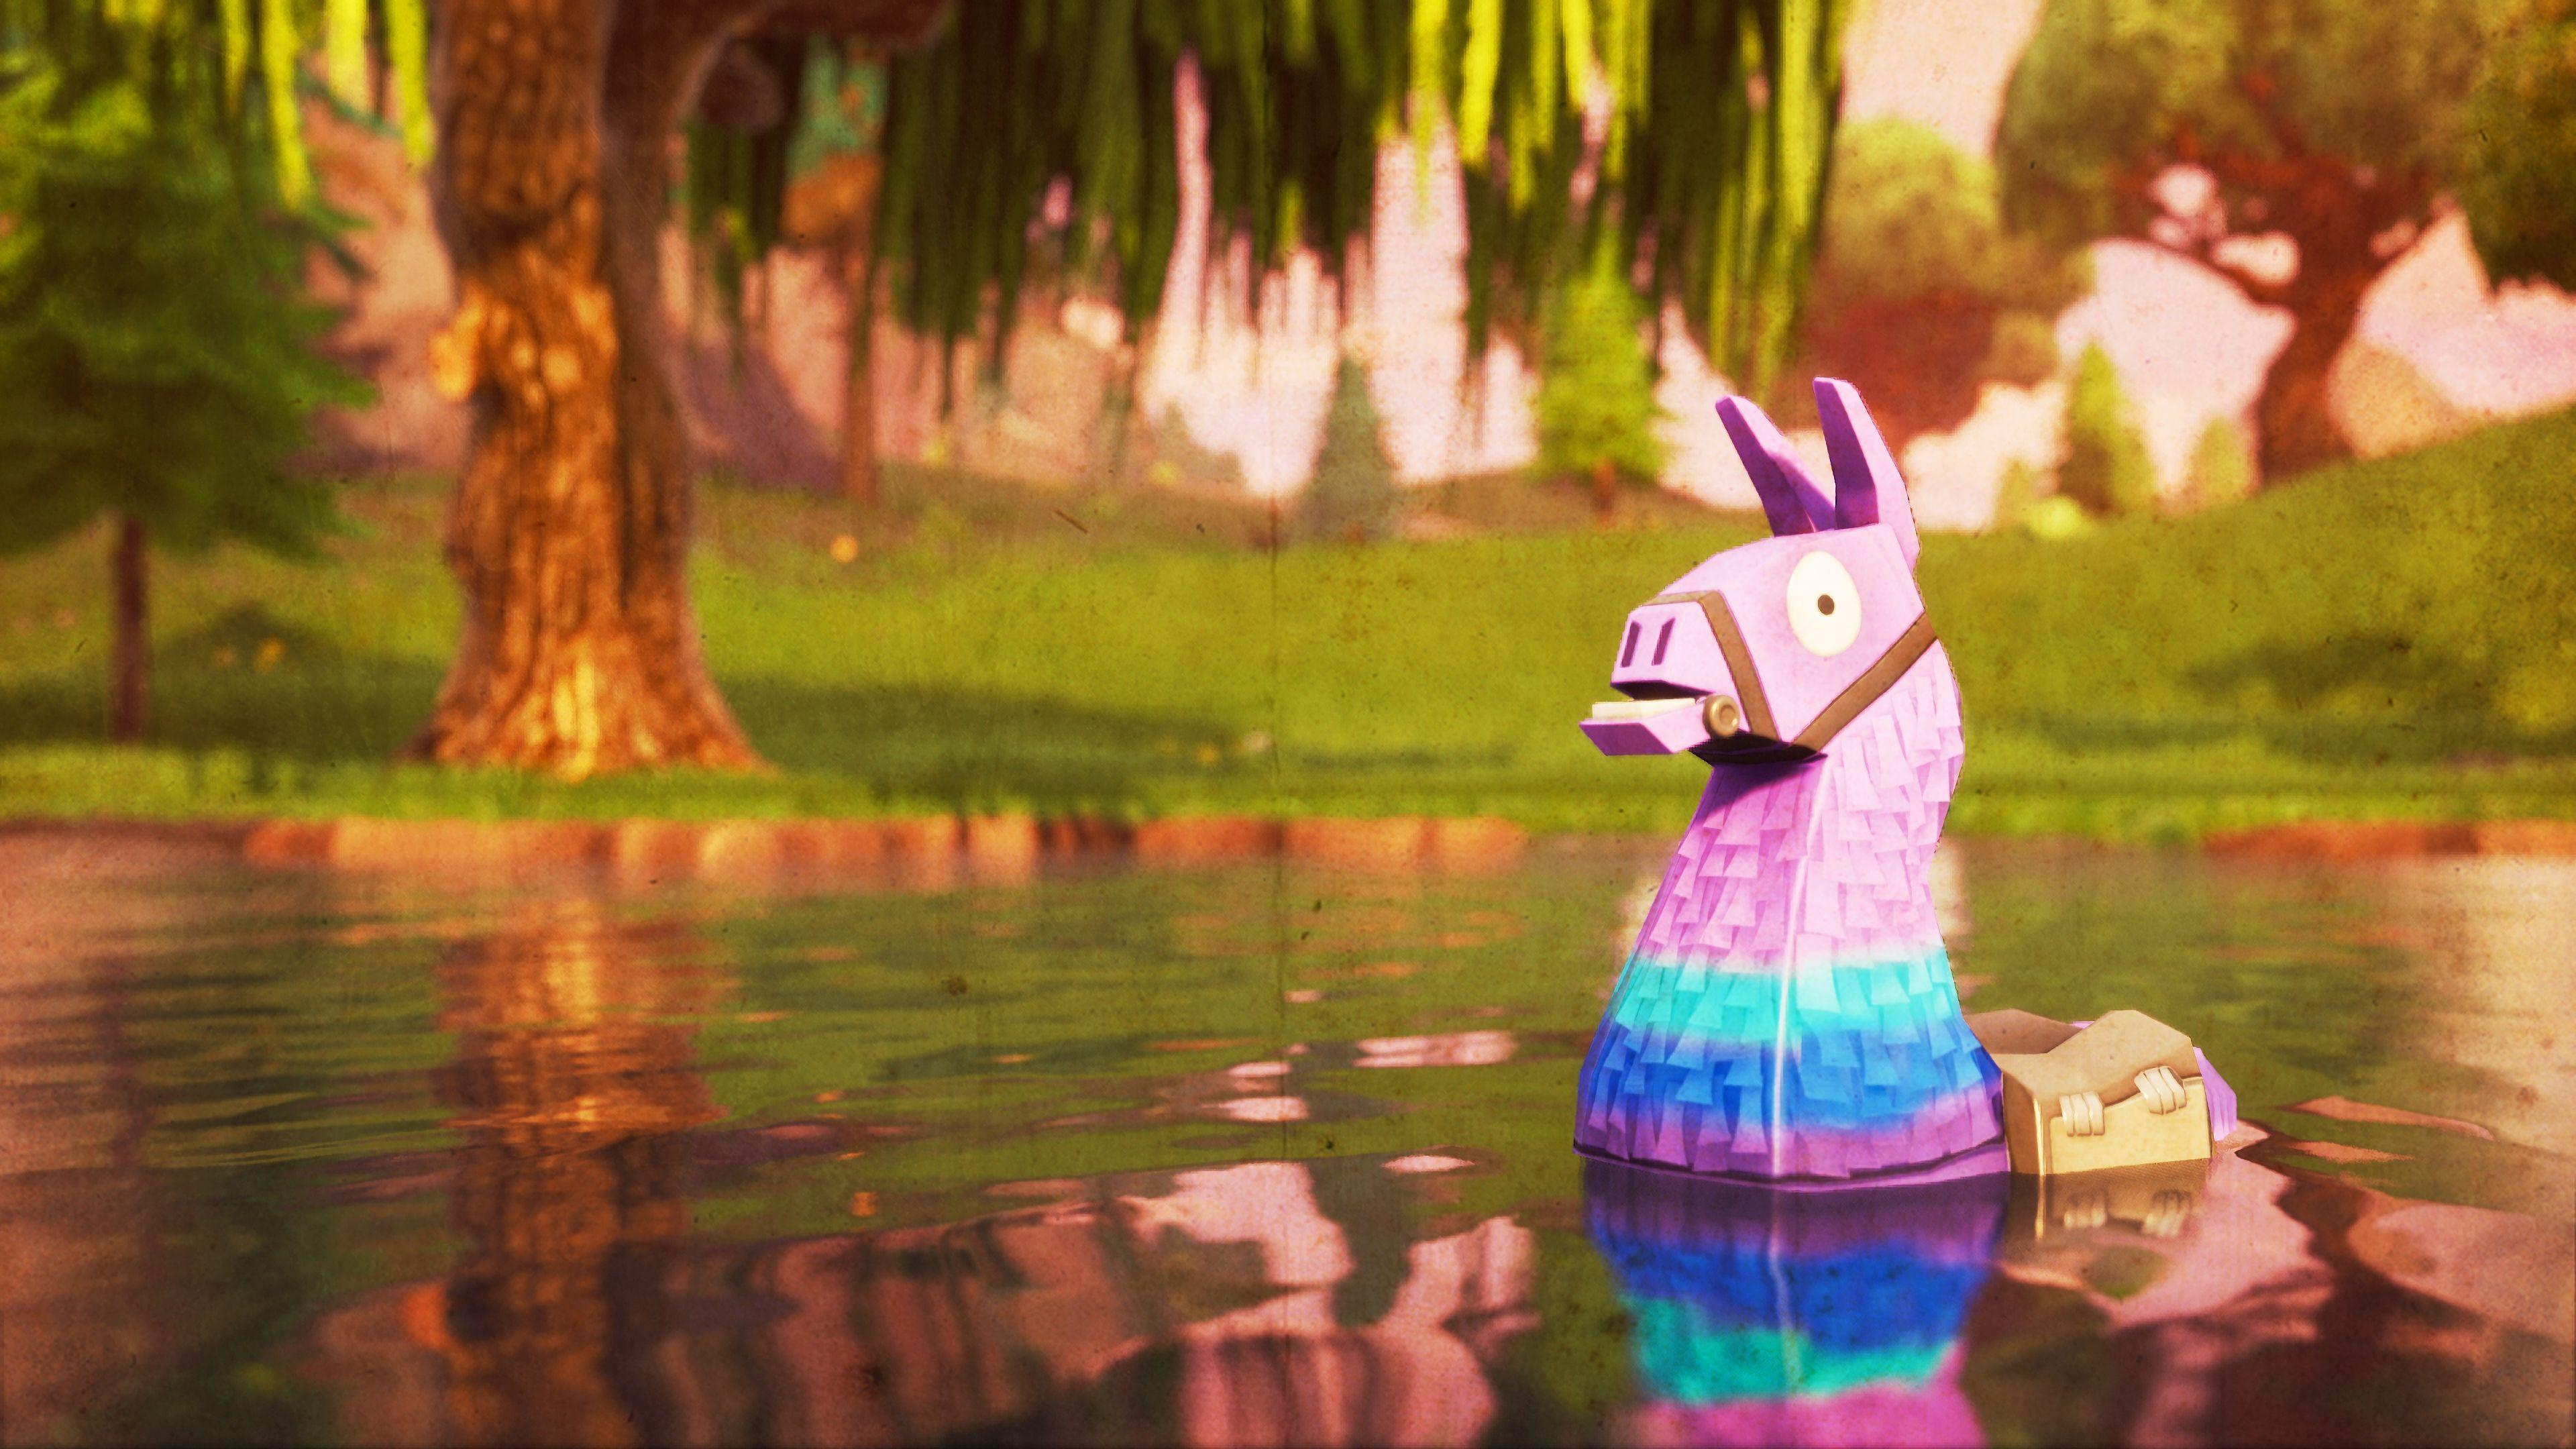 llama, Fortnite Battle Royale, Video Game, 3840x2160, Wallpapers